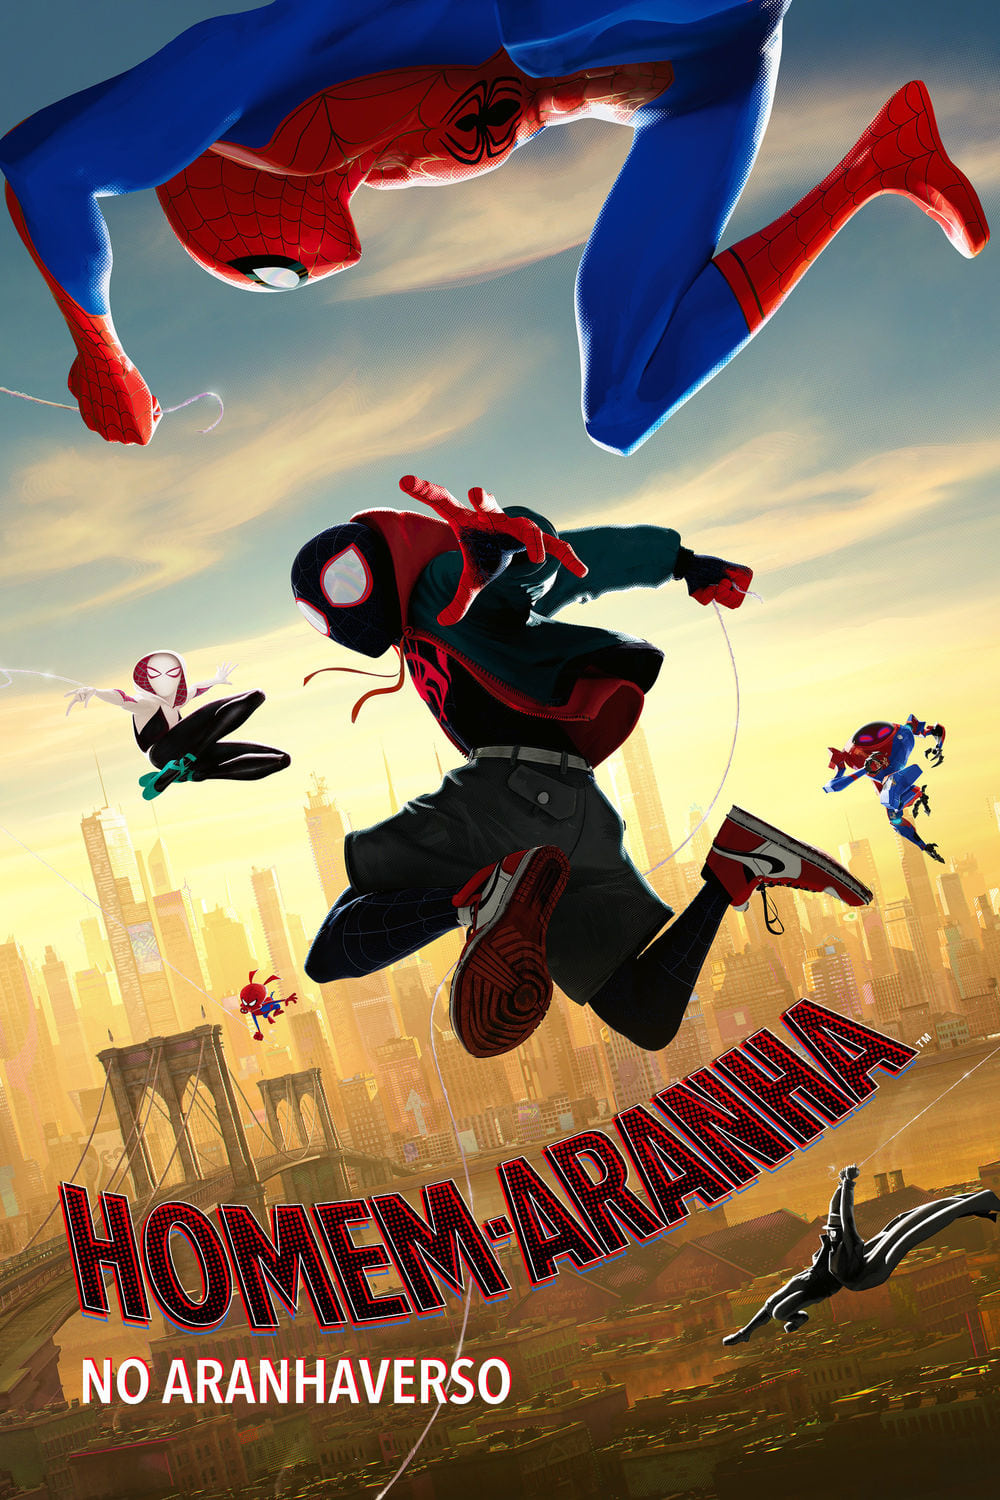 Homem-Aranha no Aranhaverso (2019) Torrent - BluRay 720p e 1080p Dublado / Dual Áudio 5.1 Download